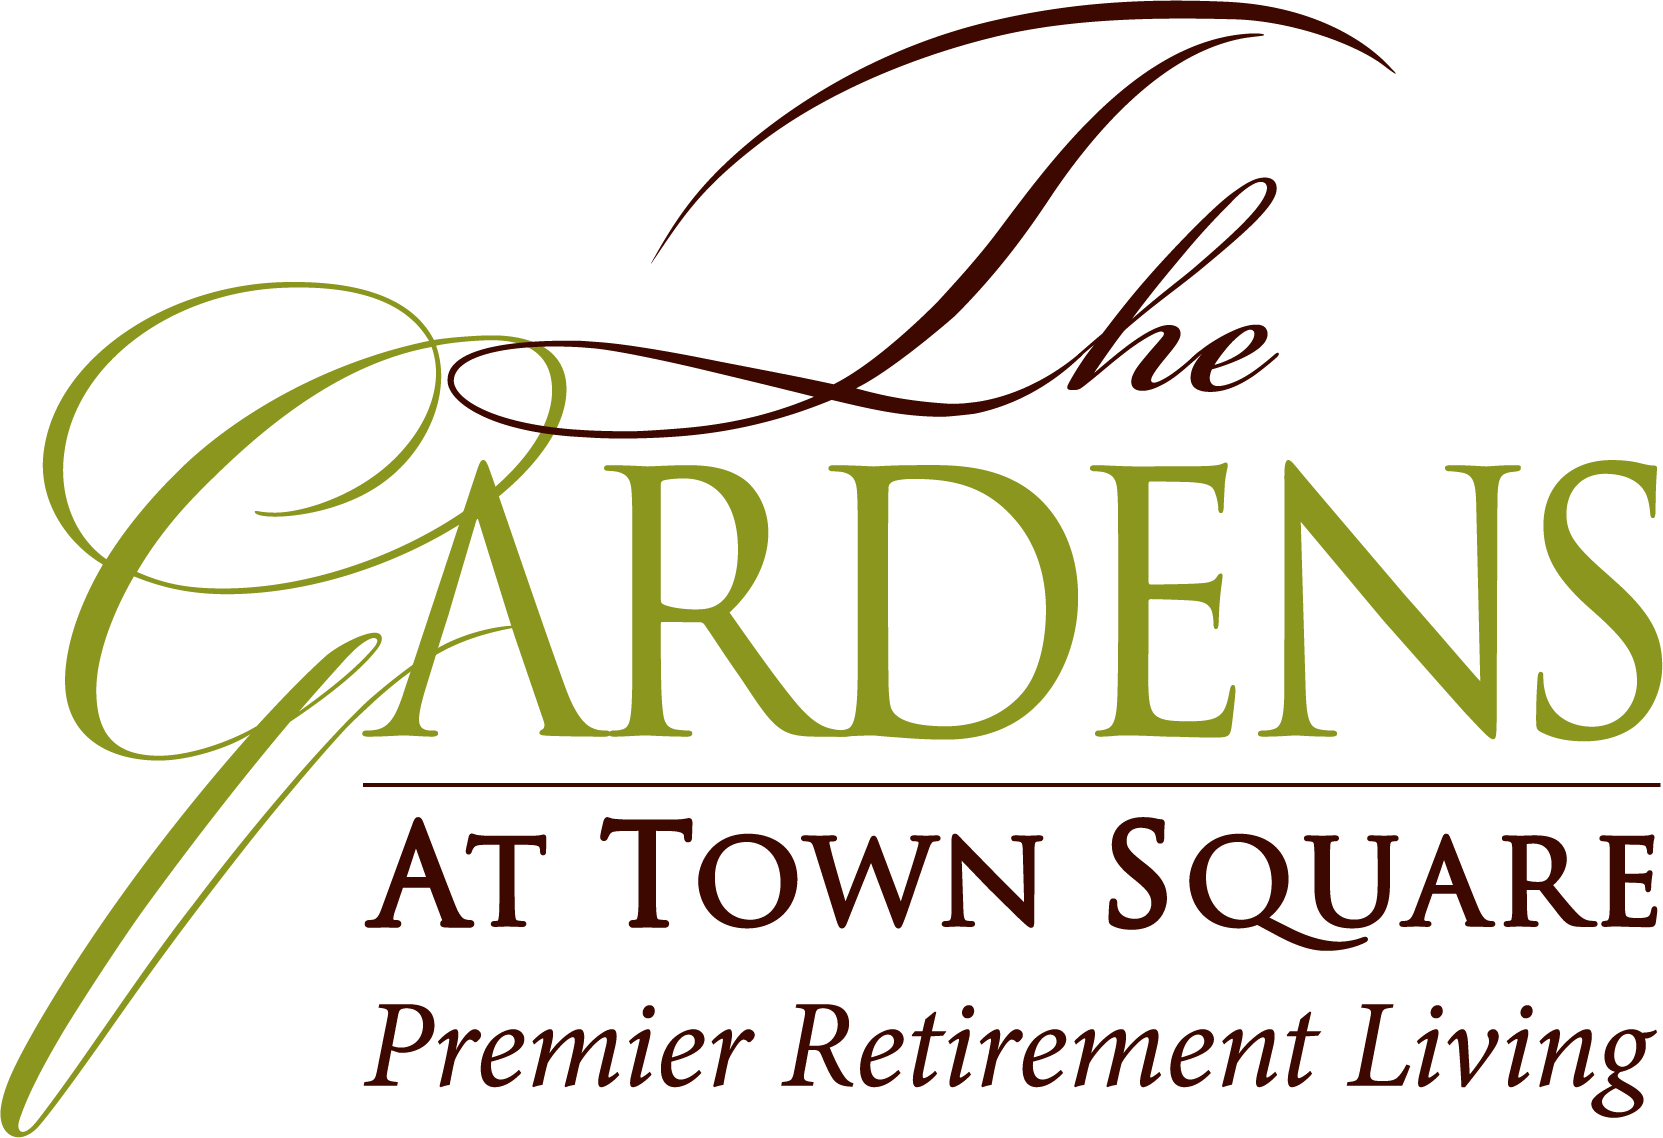 The Gardens at Town Square